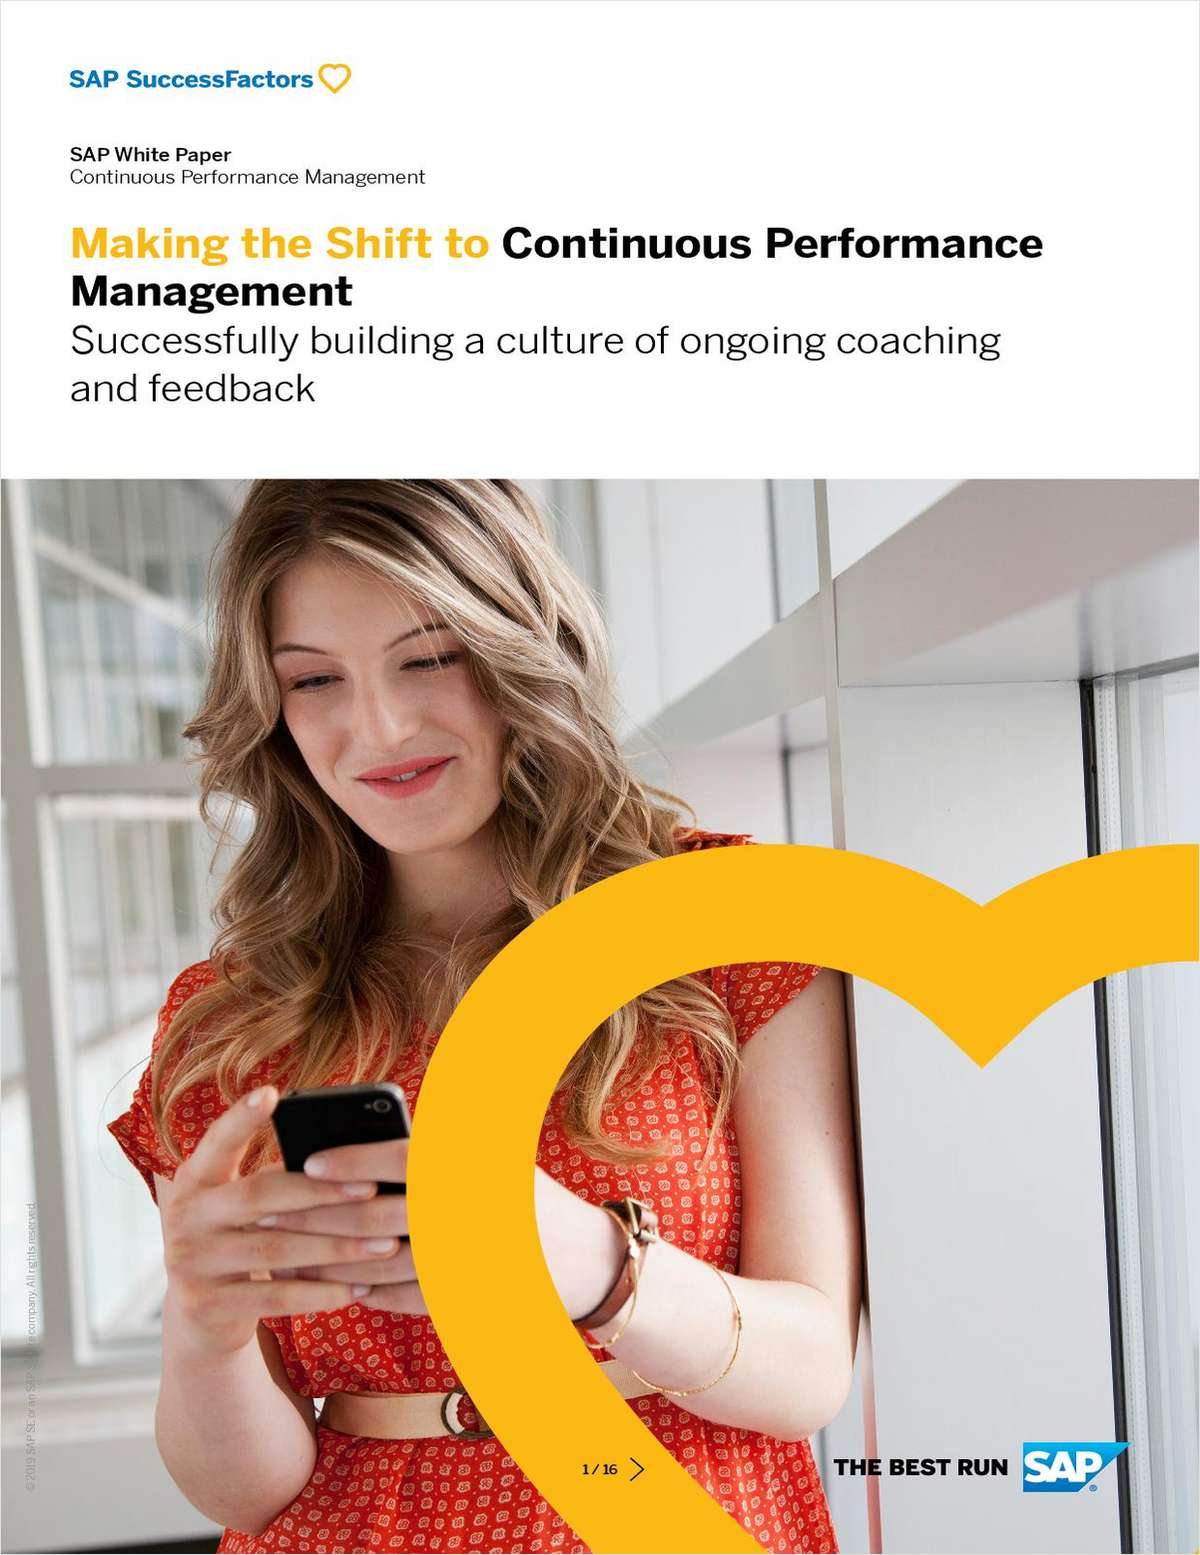 Making the Shift to Continuous Performance Management